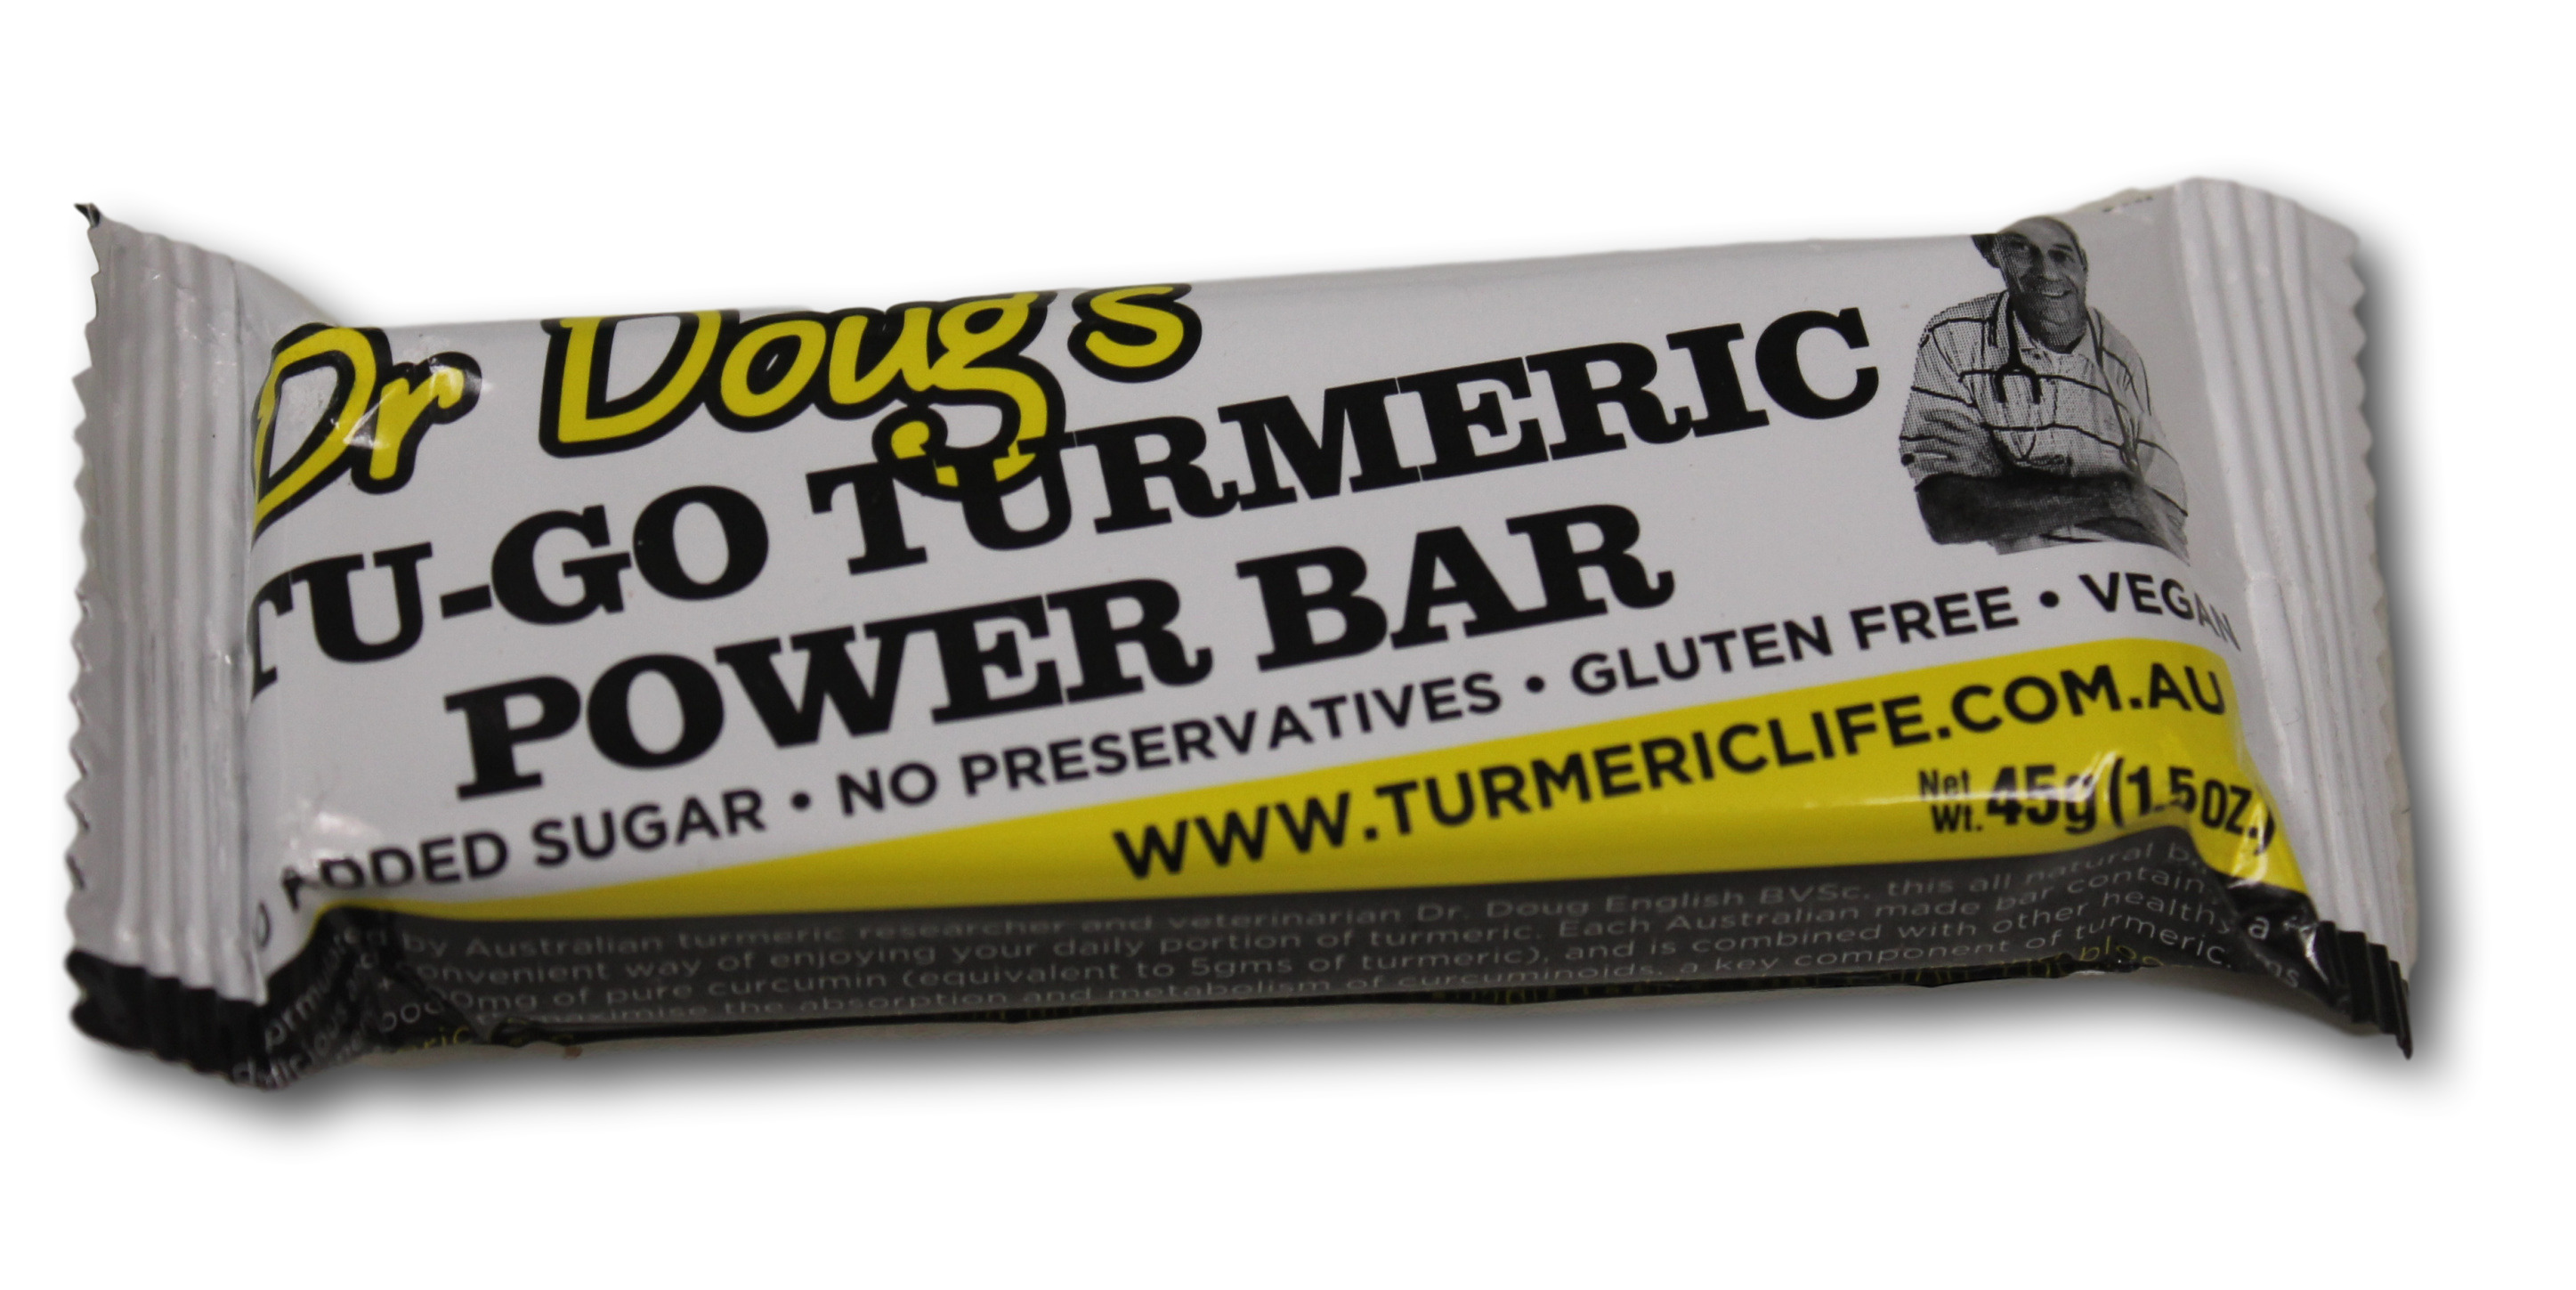 Dr. Doug's Original Power Bars (5 pack)